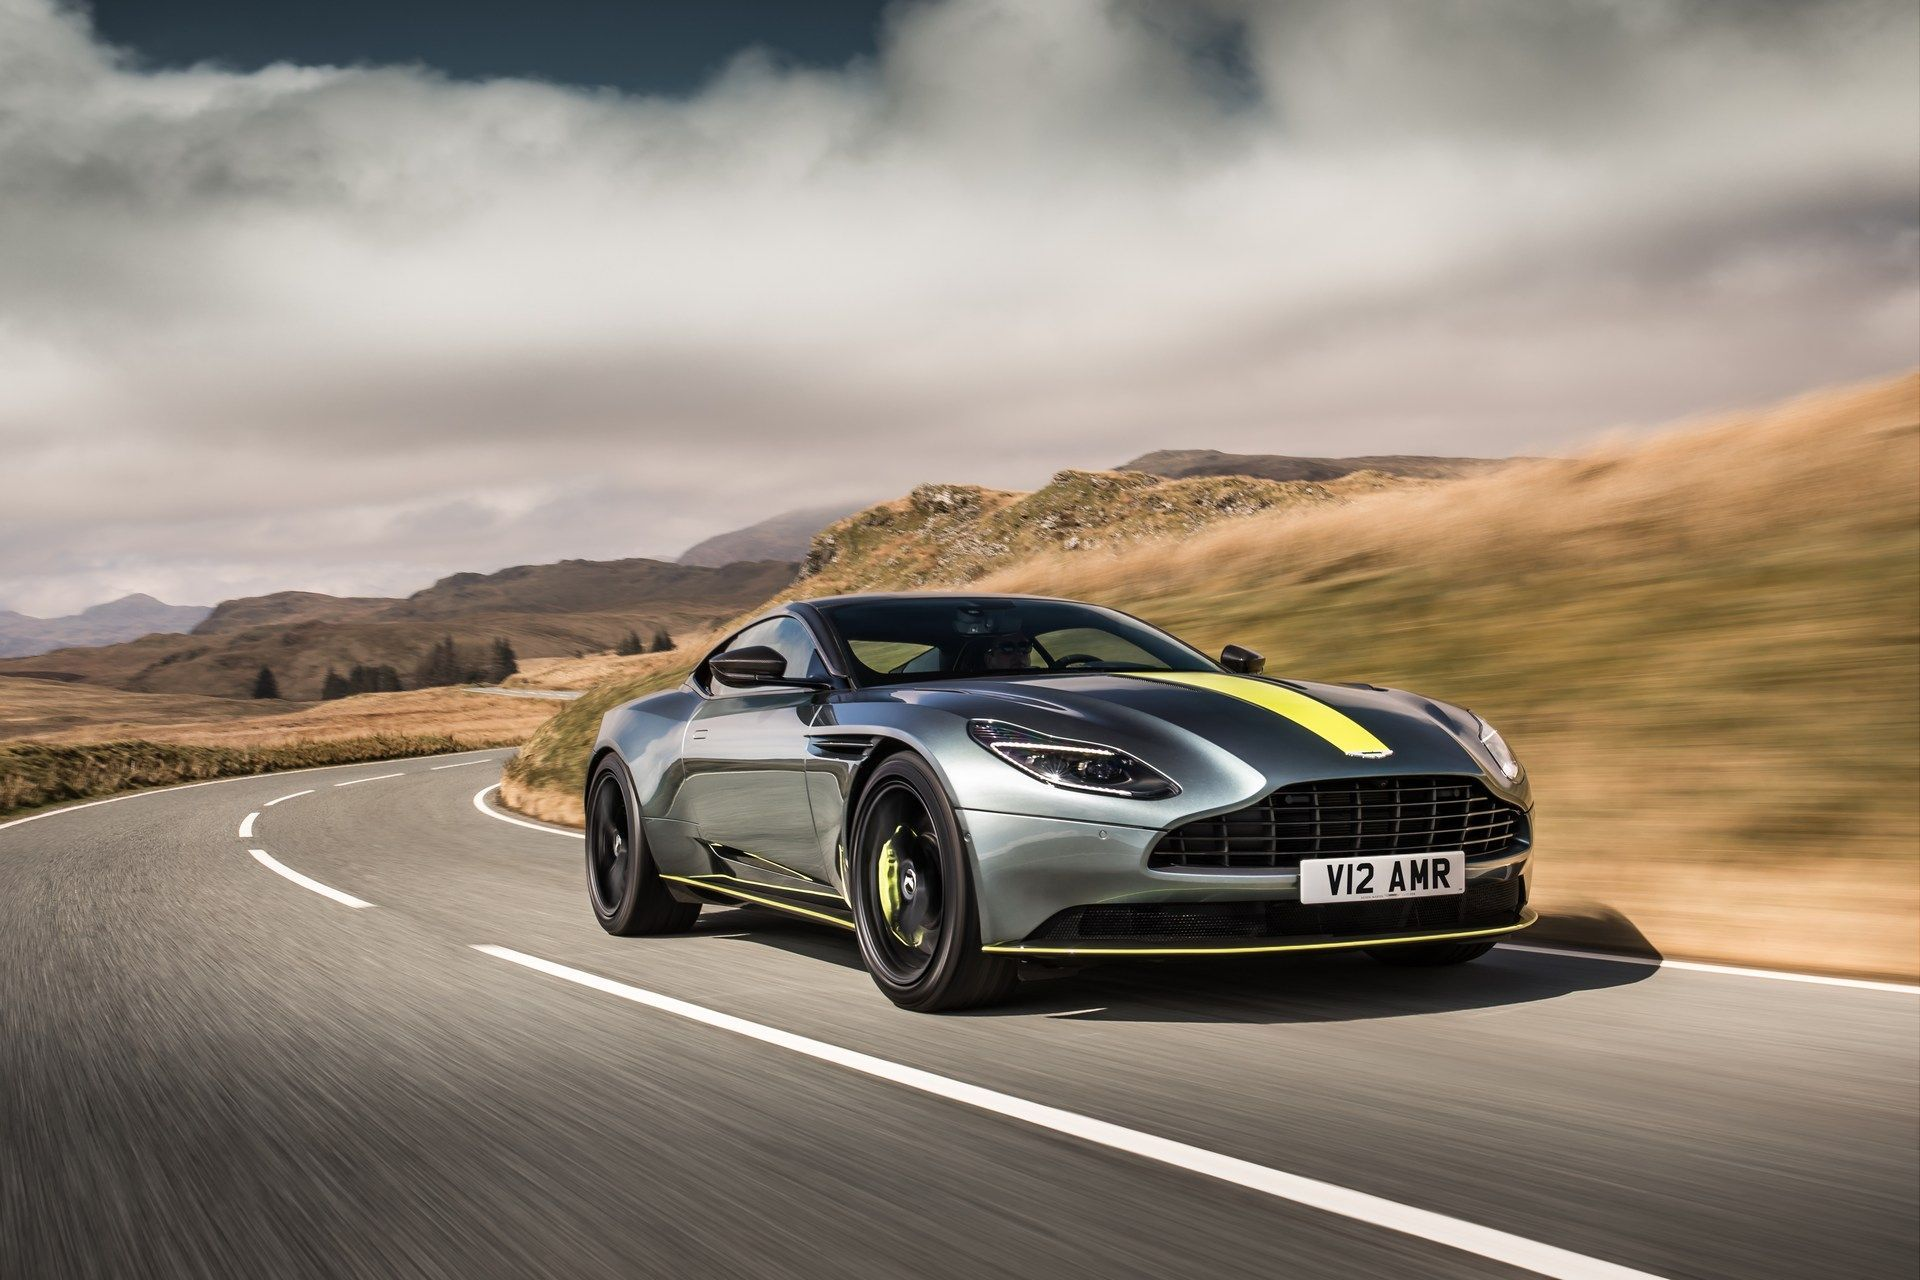 aston martin db11 amr debuts with 630 hp and 208 mph top speed